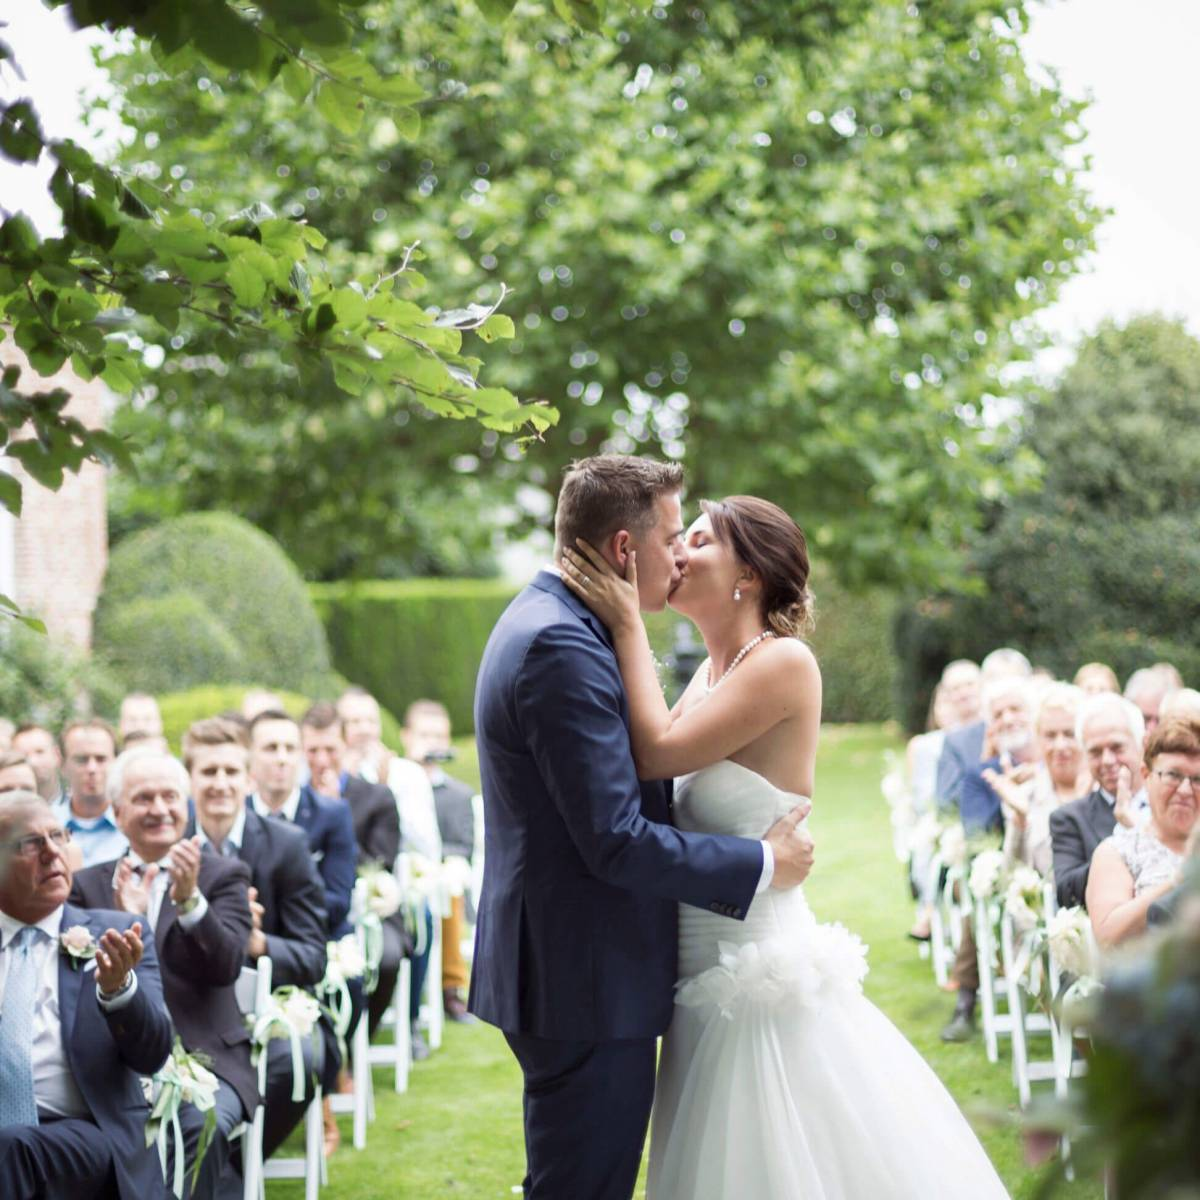 Tine De Donder - Huwelijksceremonie - Ceremoniespreker - Katleen Claes - House of Weddings 19